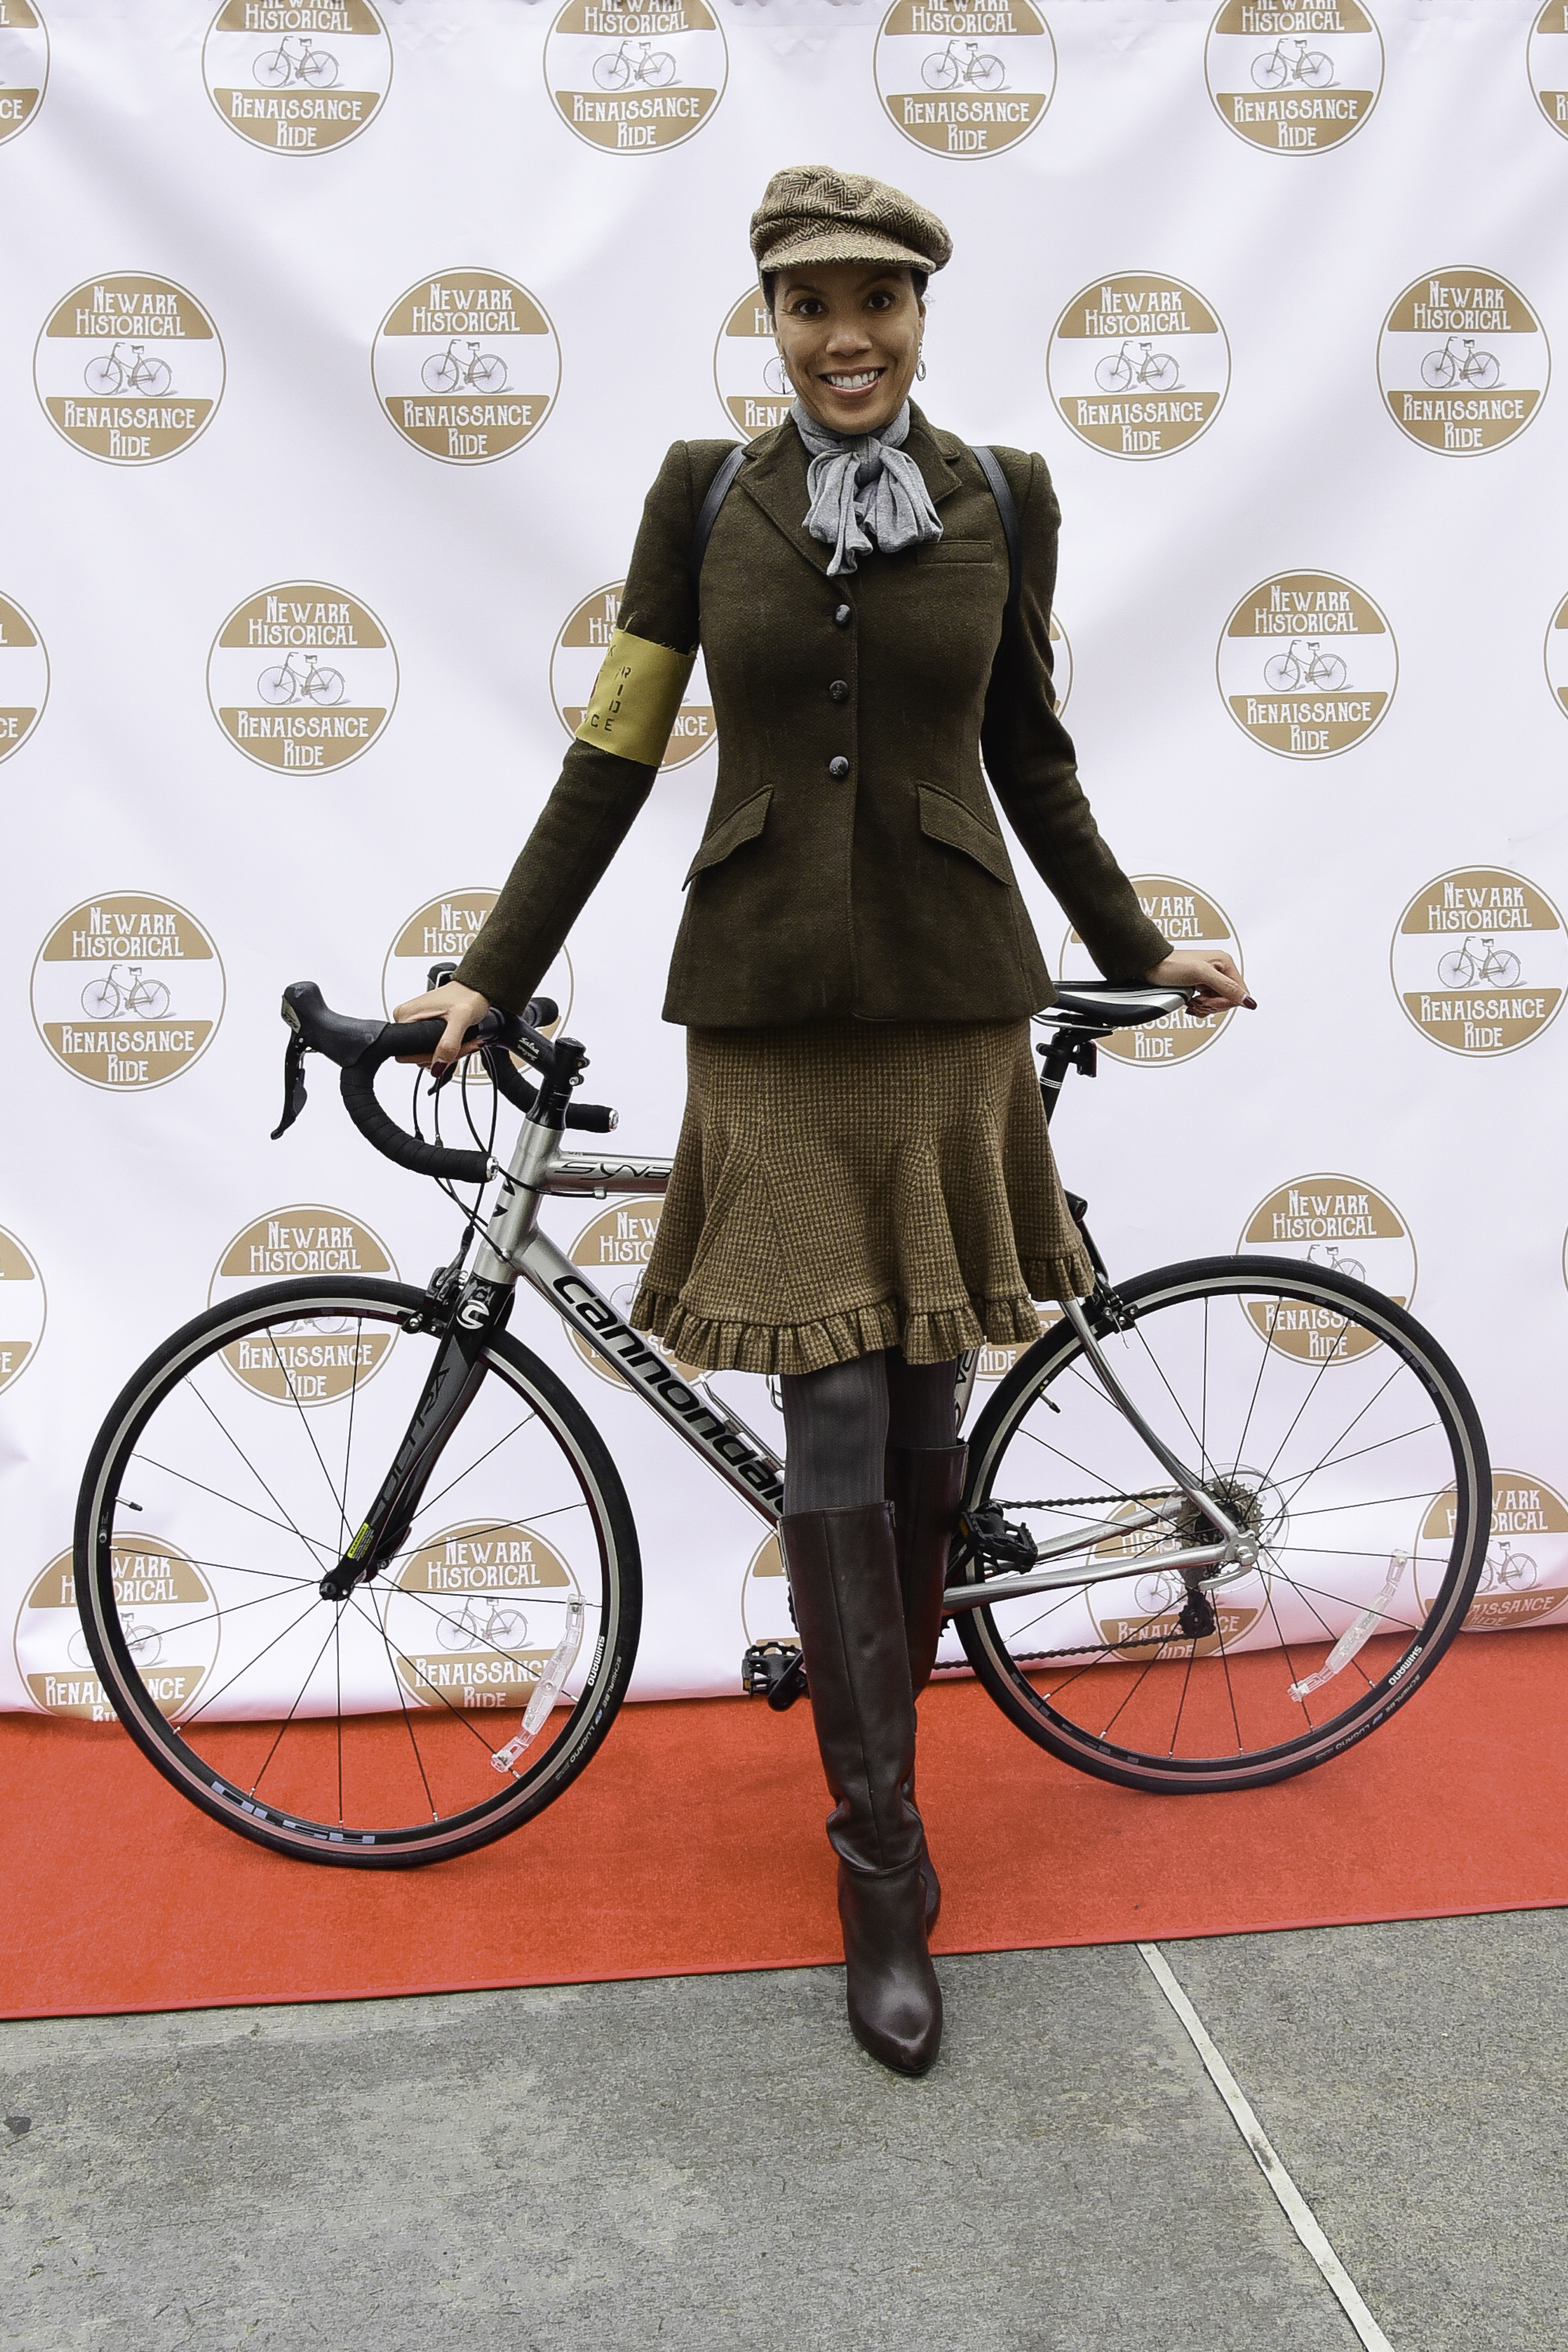 THIS is how you represent Tweed Style. - 2017 Best Dressed Winner